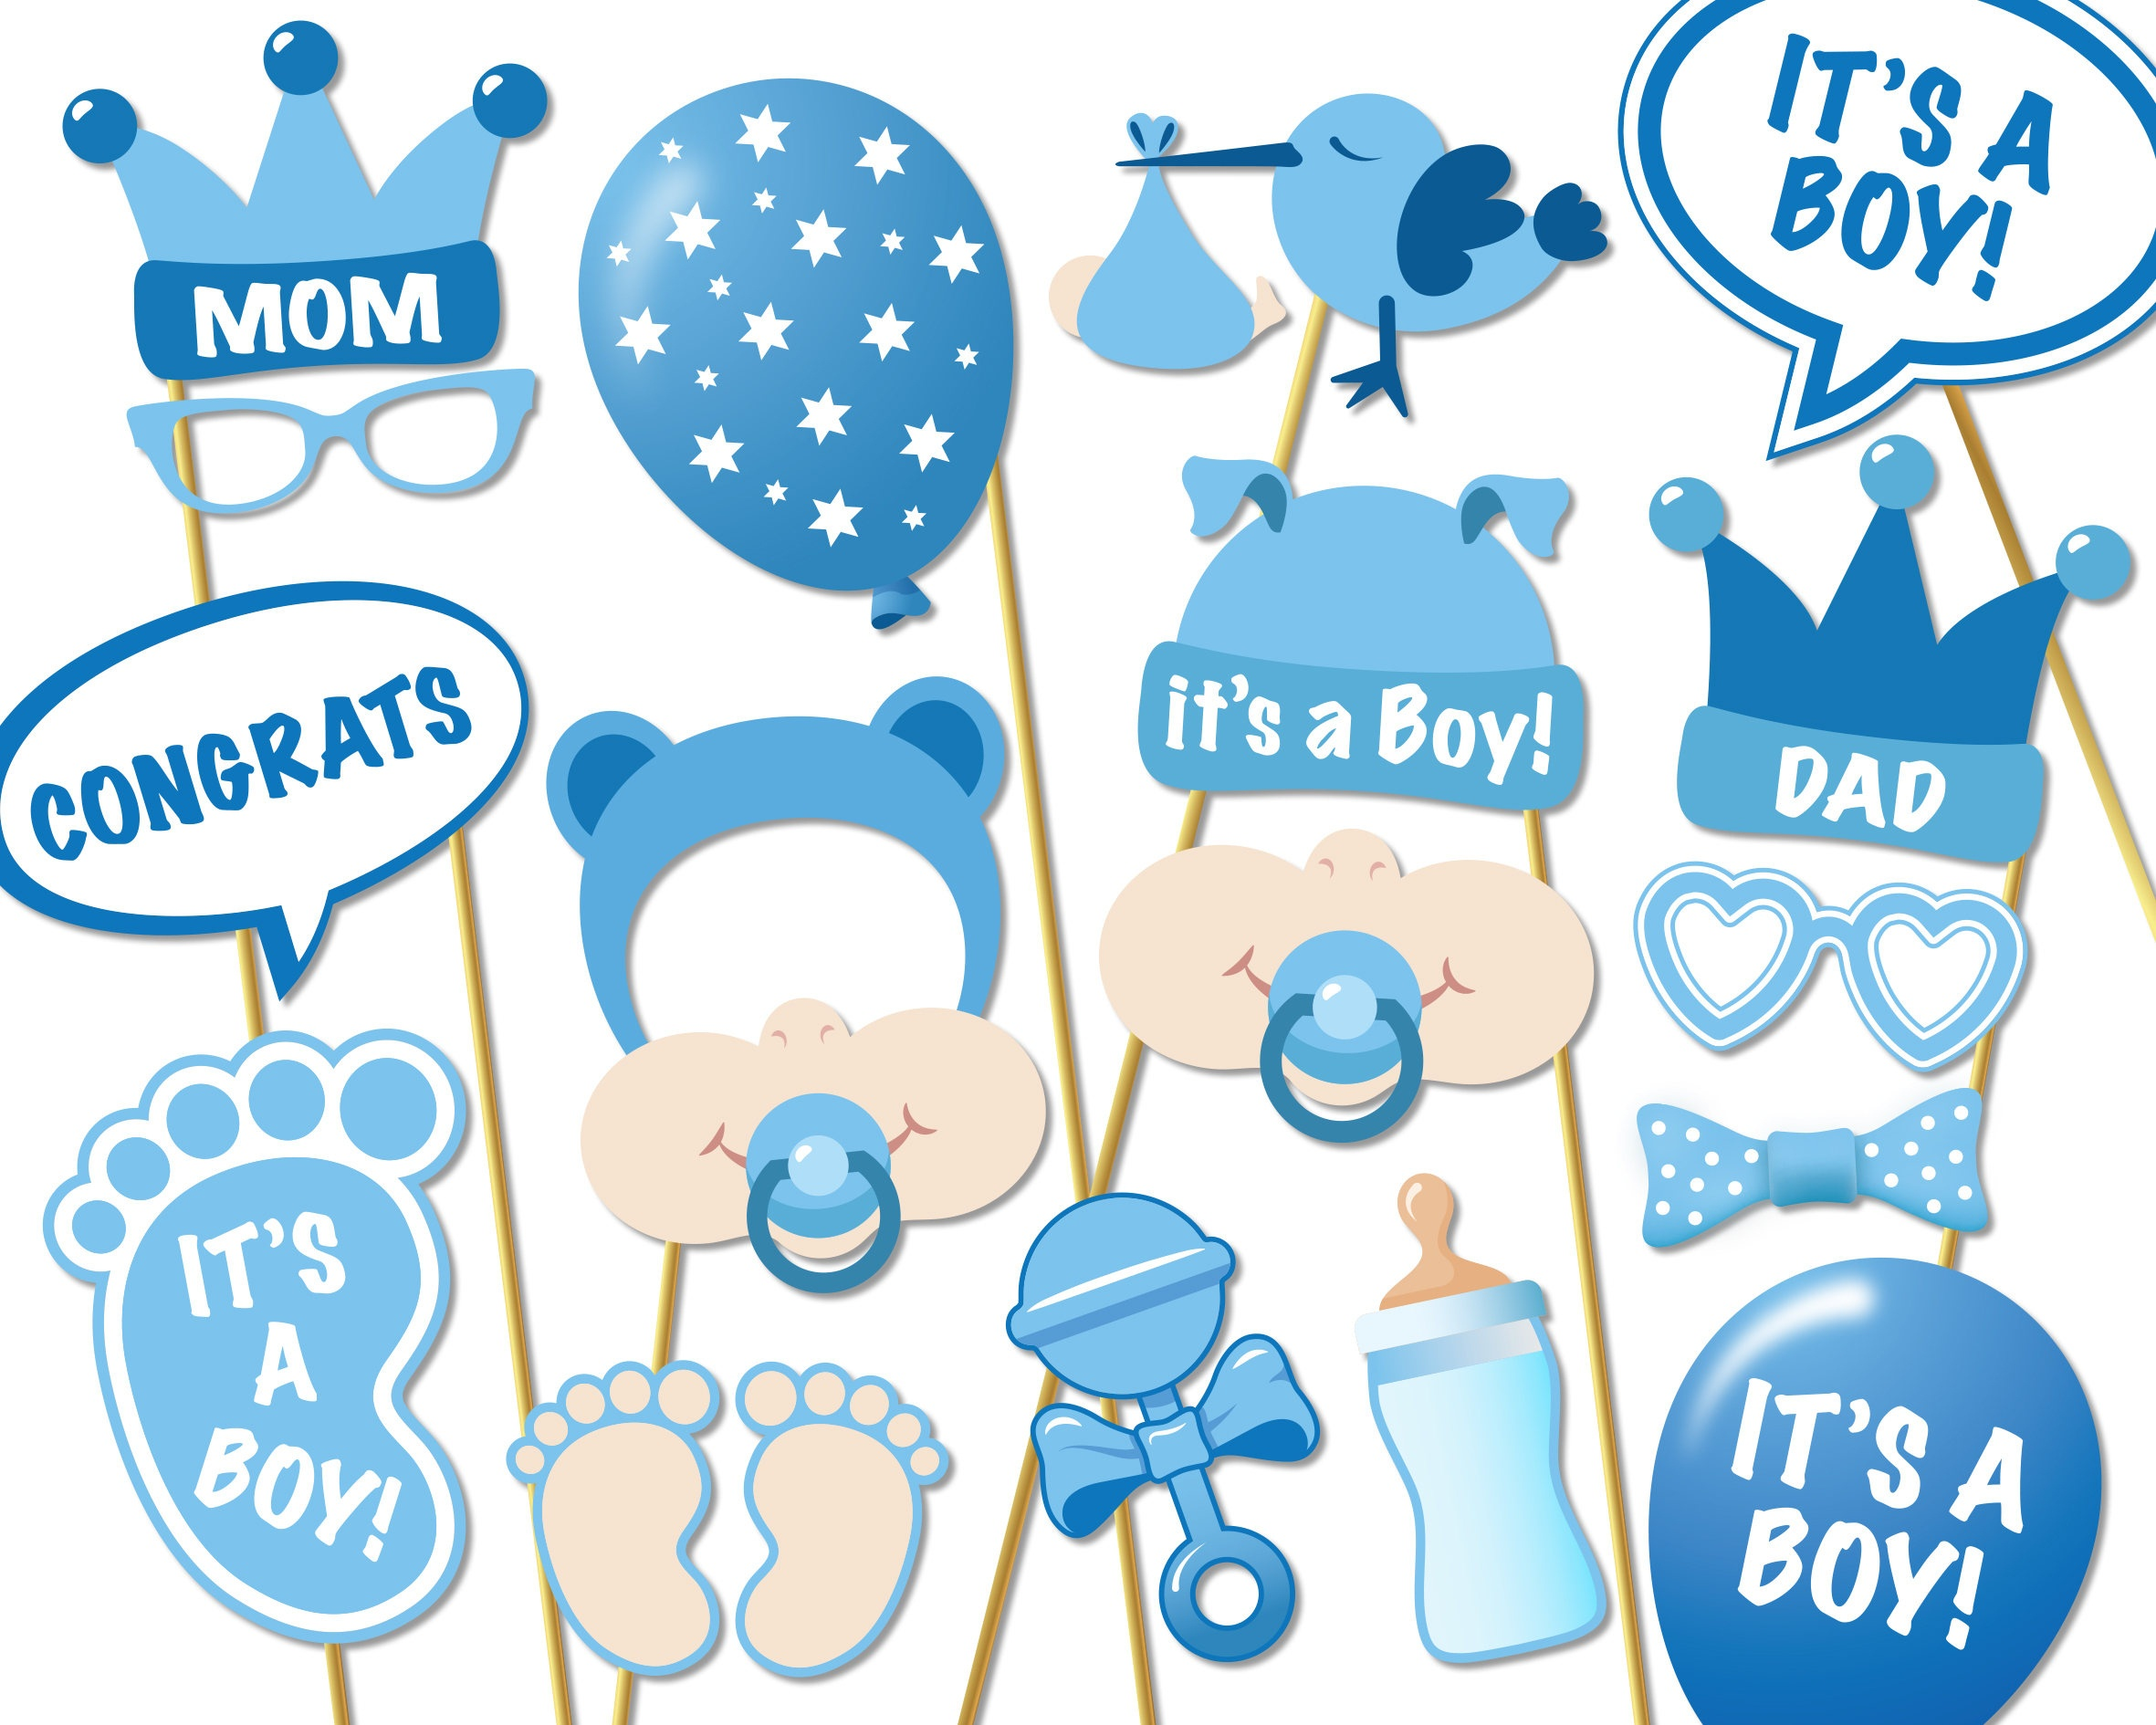 Baby Shower Photo Props It's A Boy Photo Booth Props | Etsy - Free Printable Boy Baby Shower Photo Booth Props